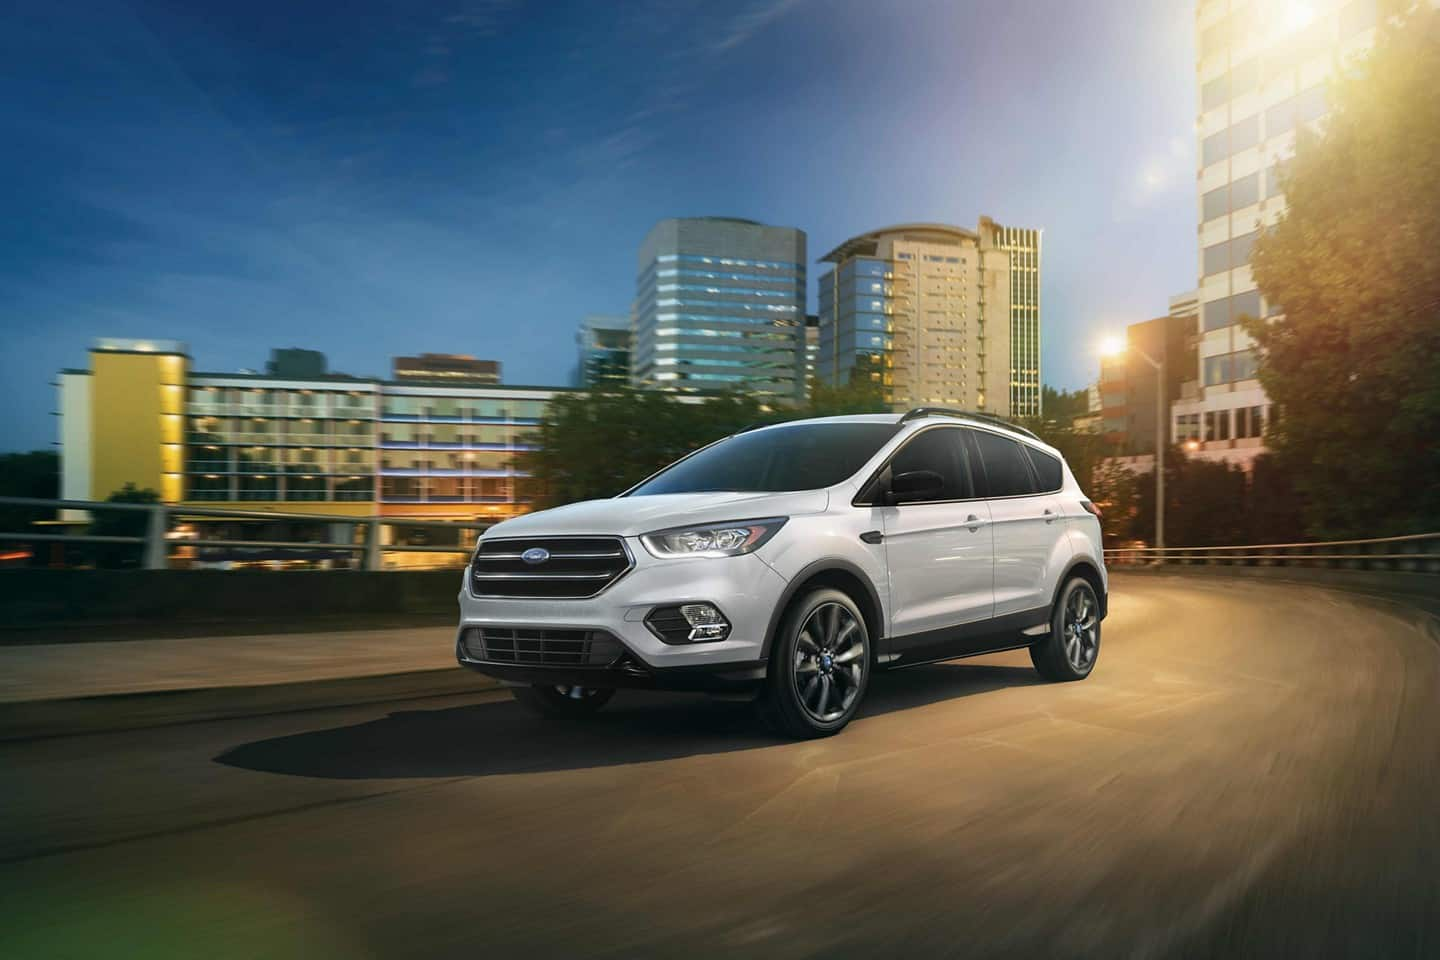 2019 Ford Escape for Sale near Fort Knox, KY